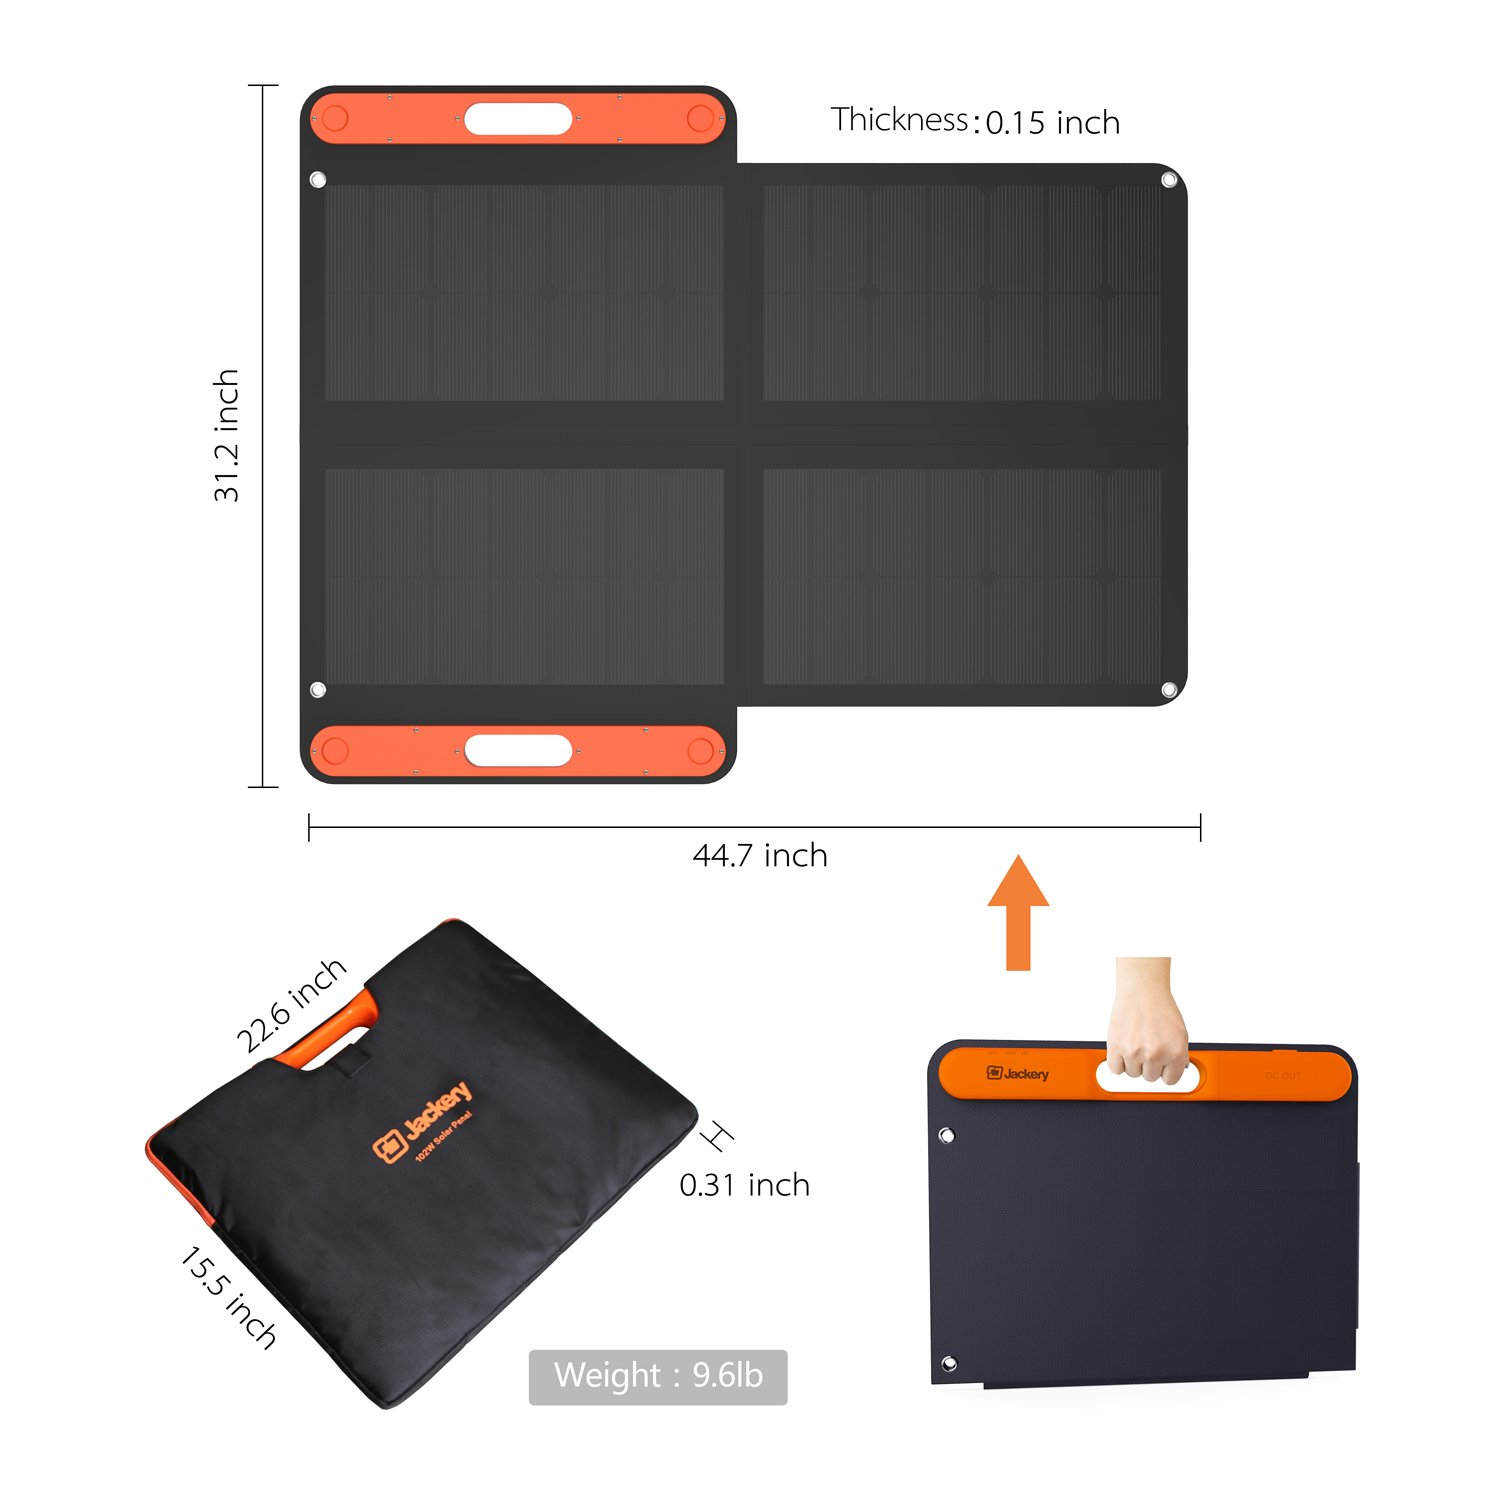 Jackery Portable Solar Panel 100W Explorer 440 and Powerpro 500, Foldable Solar Charger Additional USB C and USB Output for Phones Tablet Camera Camping Outdoor by Jackery (Image #4)